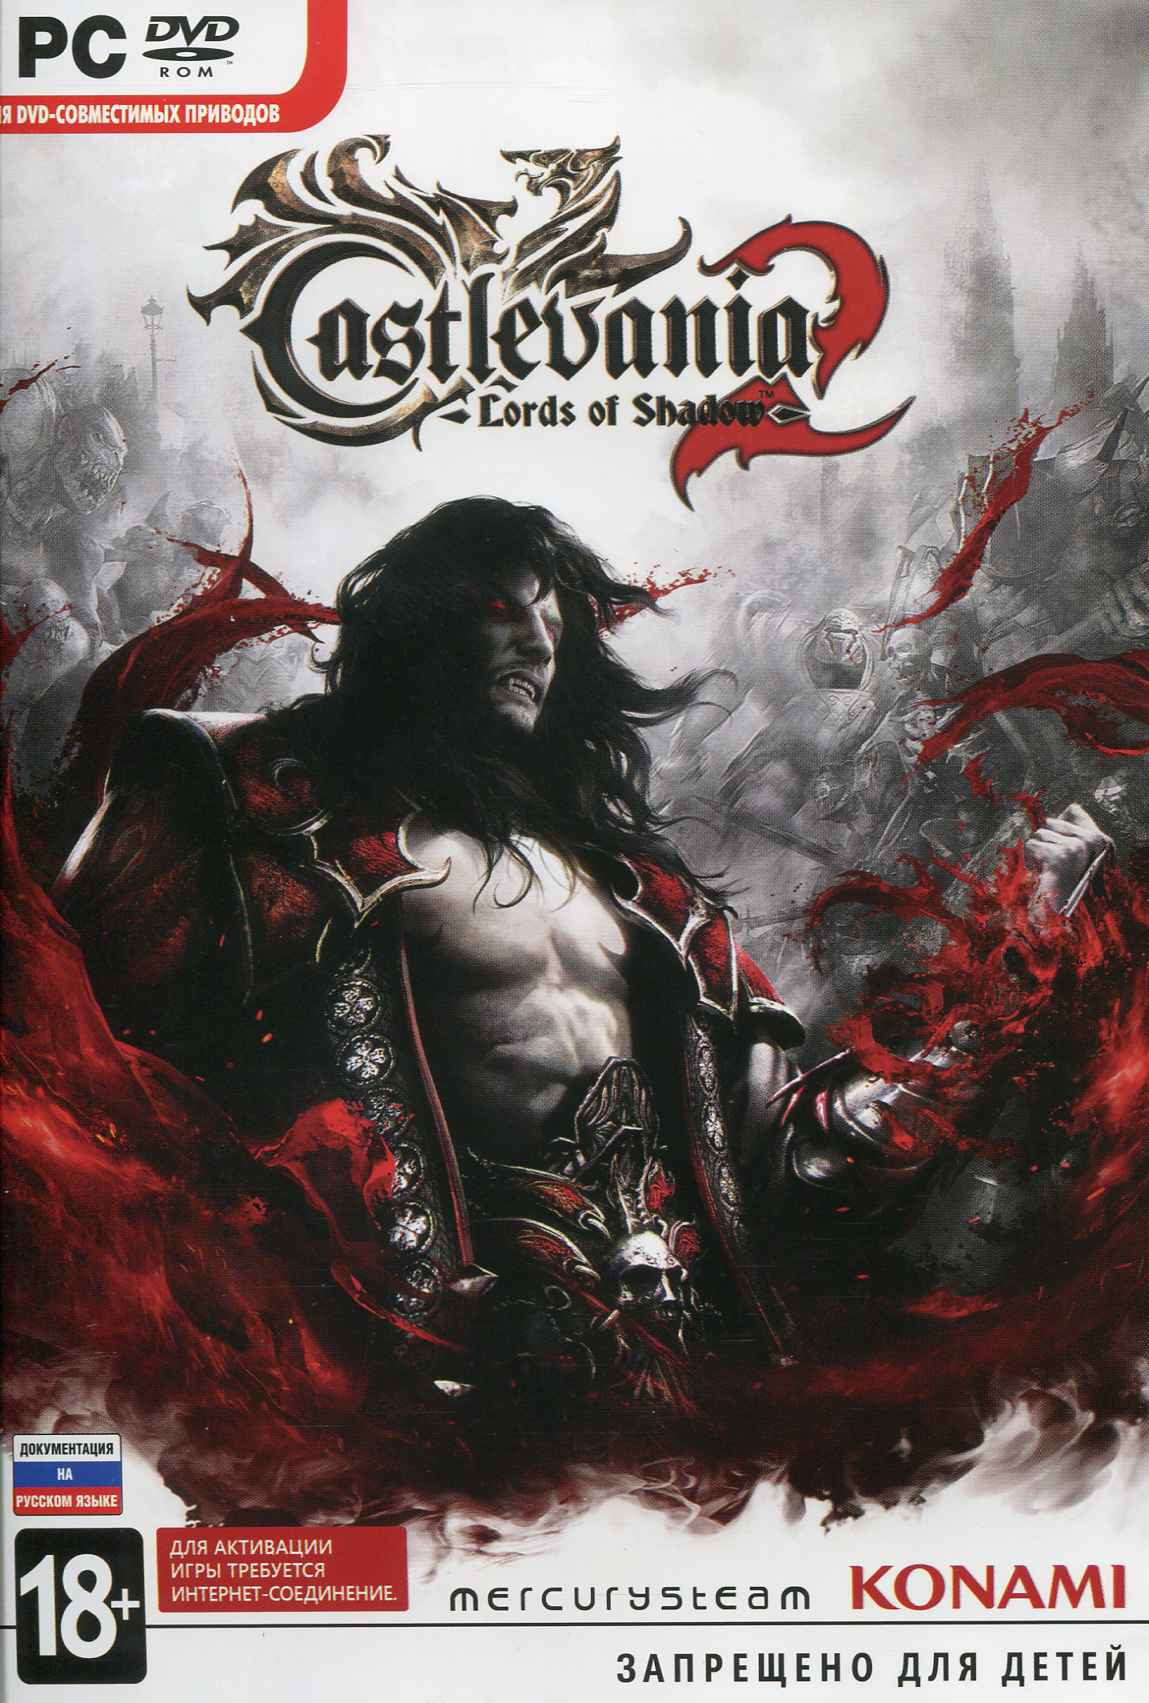 Castlevania: Lords of Shadow 2 (activation key in Steam